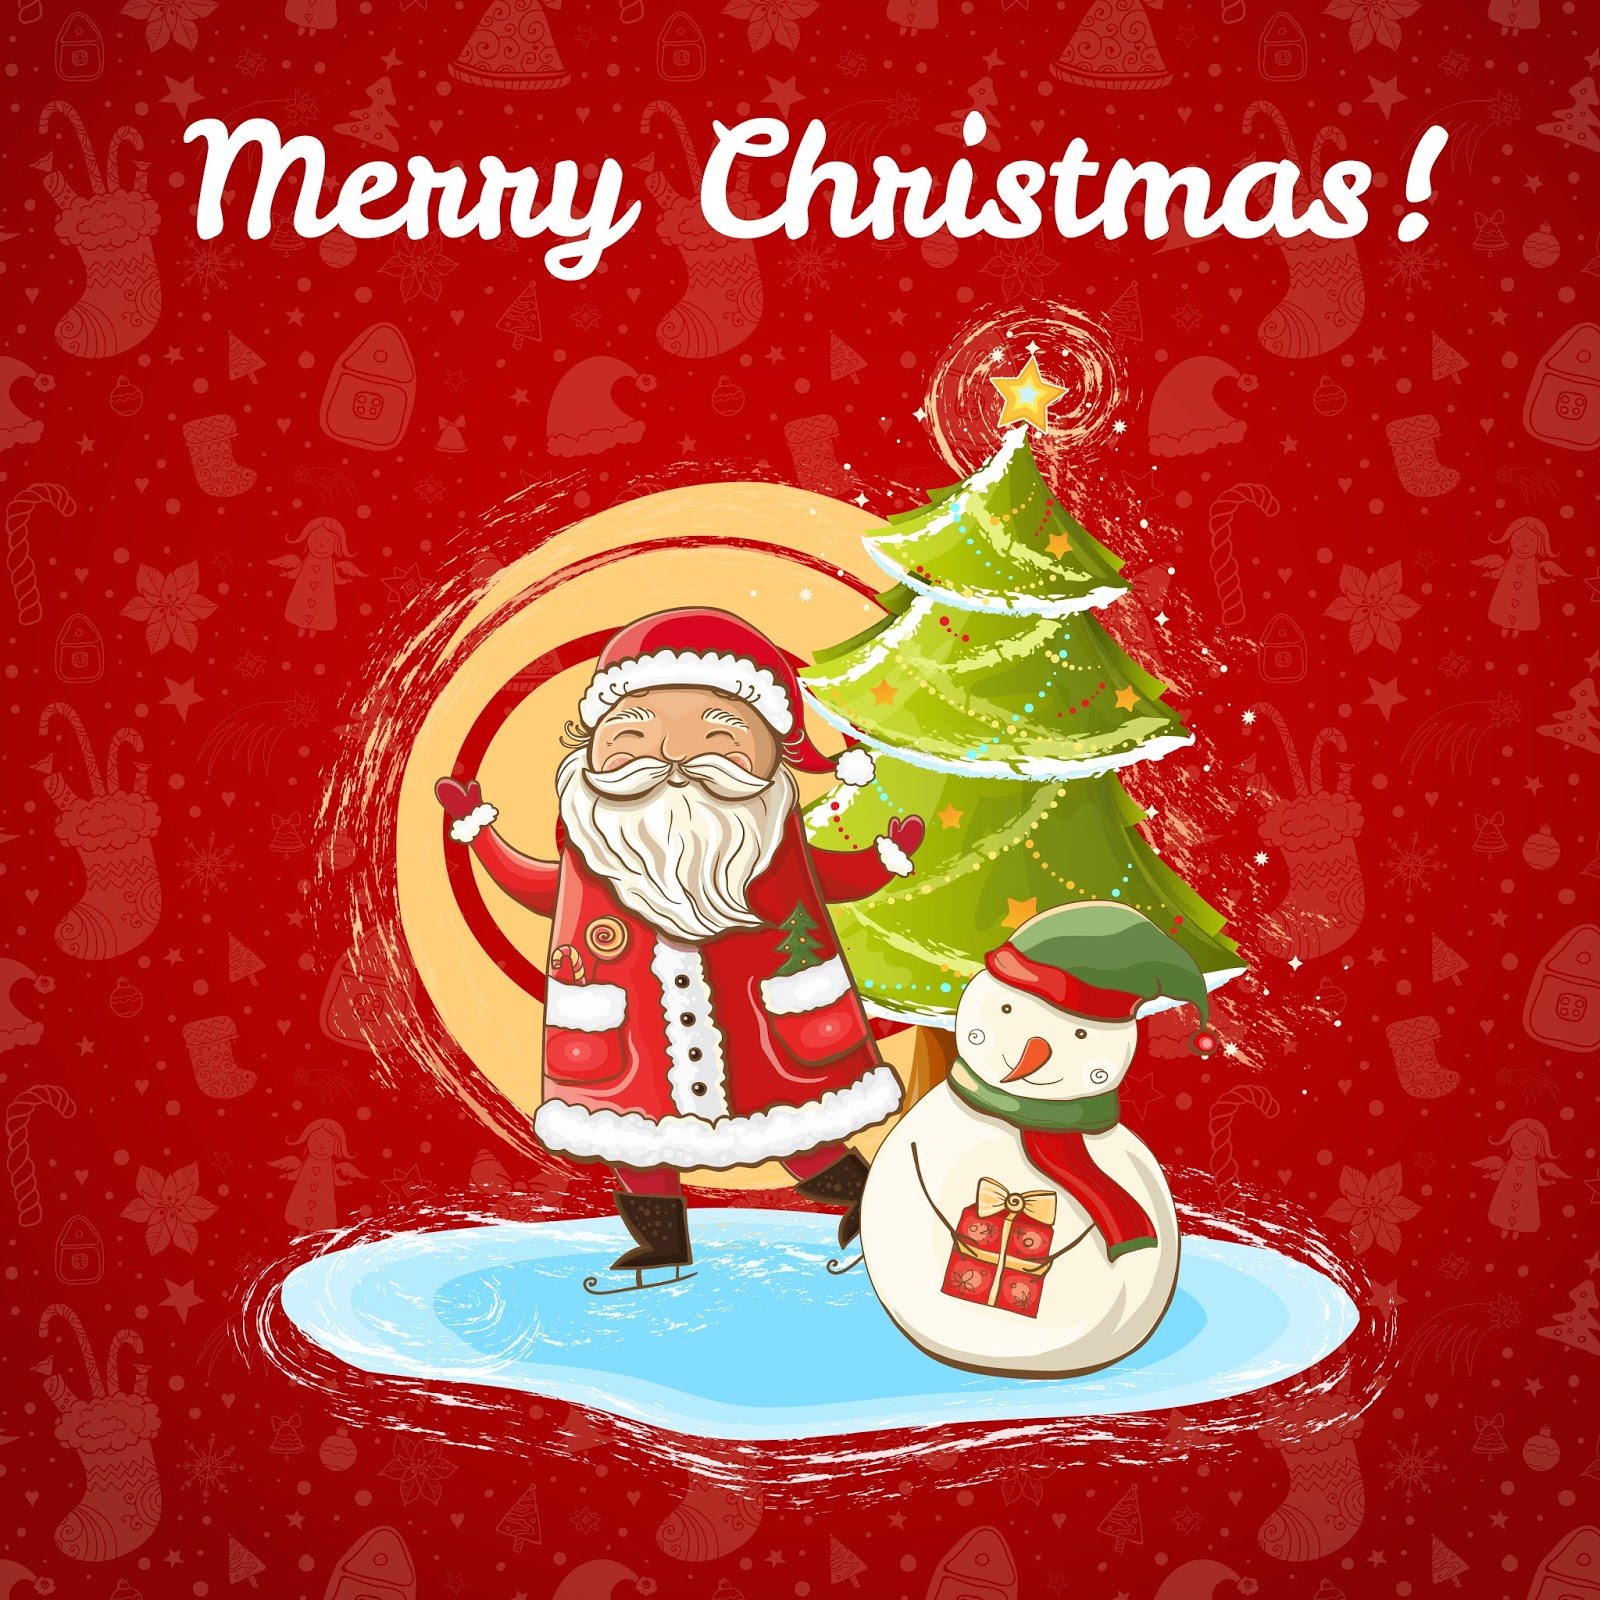 Vector Color Bright Christmas Template With Illustration Happy Santa Claus Snowman Bright Christmas Tree Hand Drawn Free Download Vector CDR, AI, EPS and PNG Formats